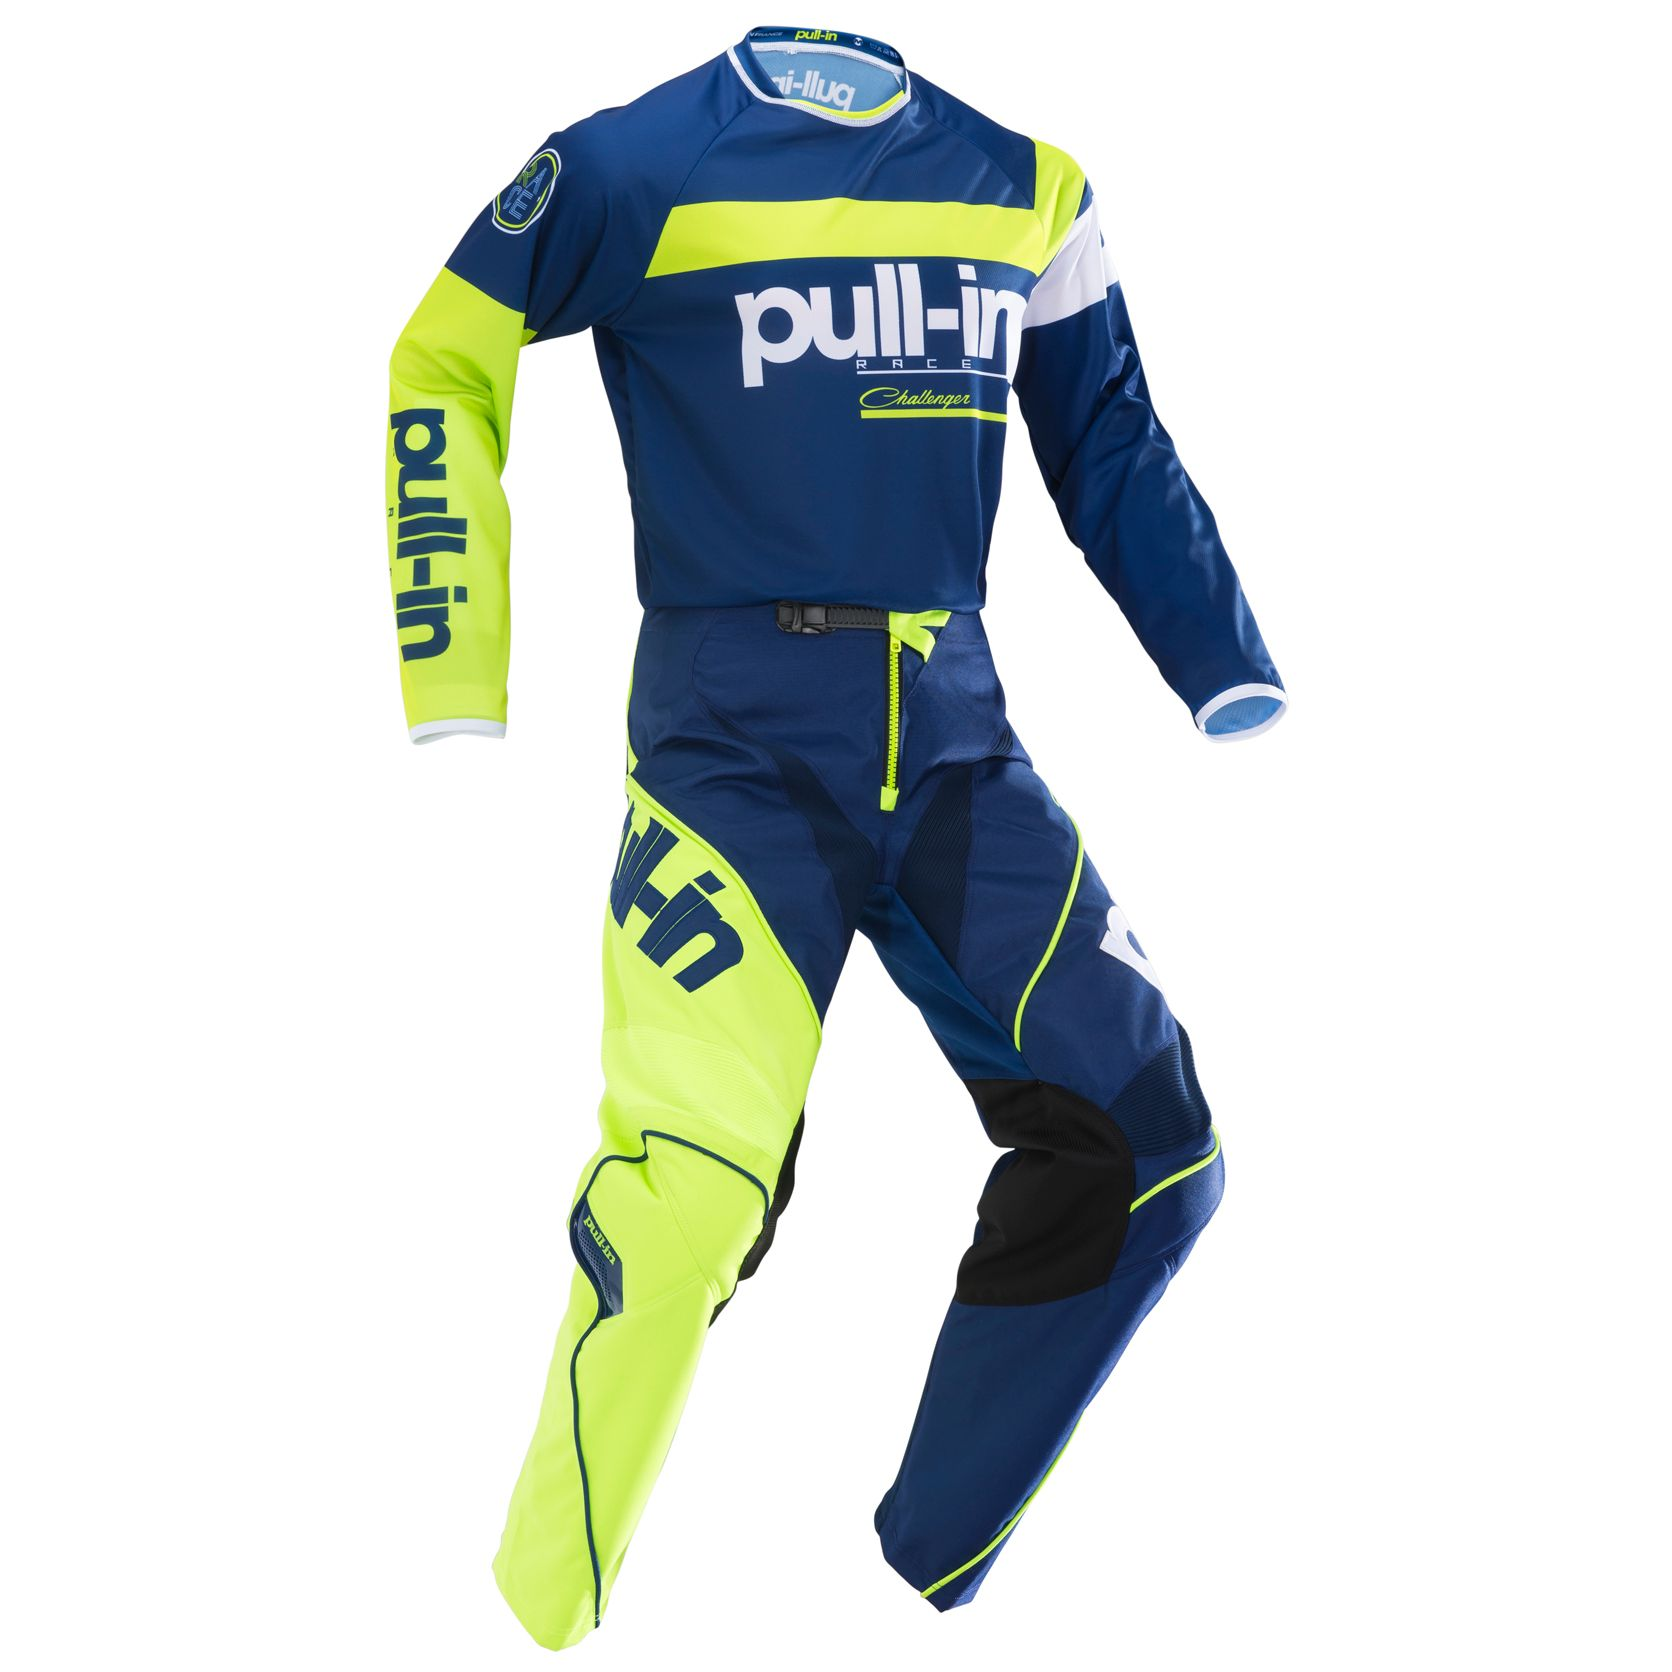 Maillot cross Pull-in RACE NAVY LIME 2019